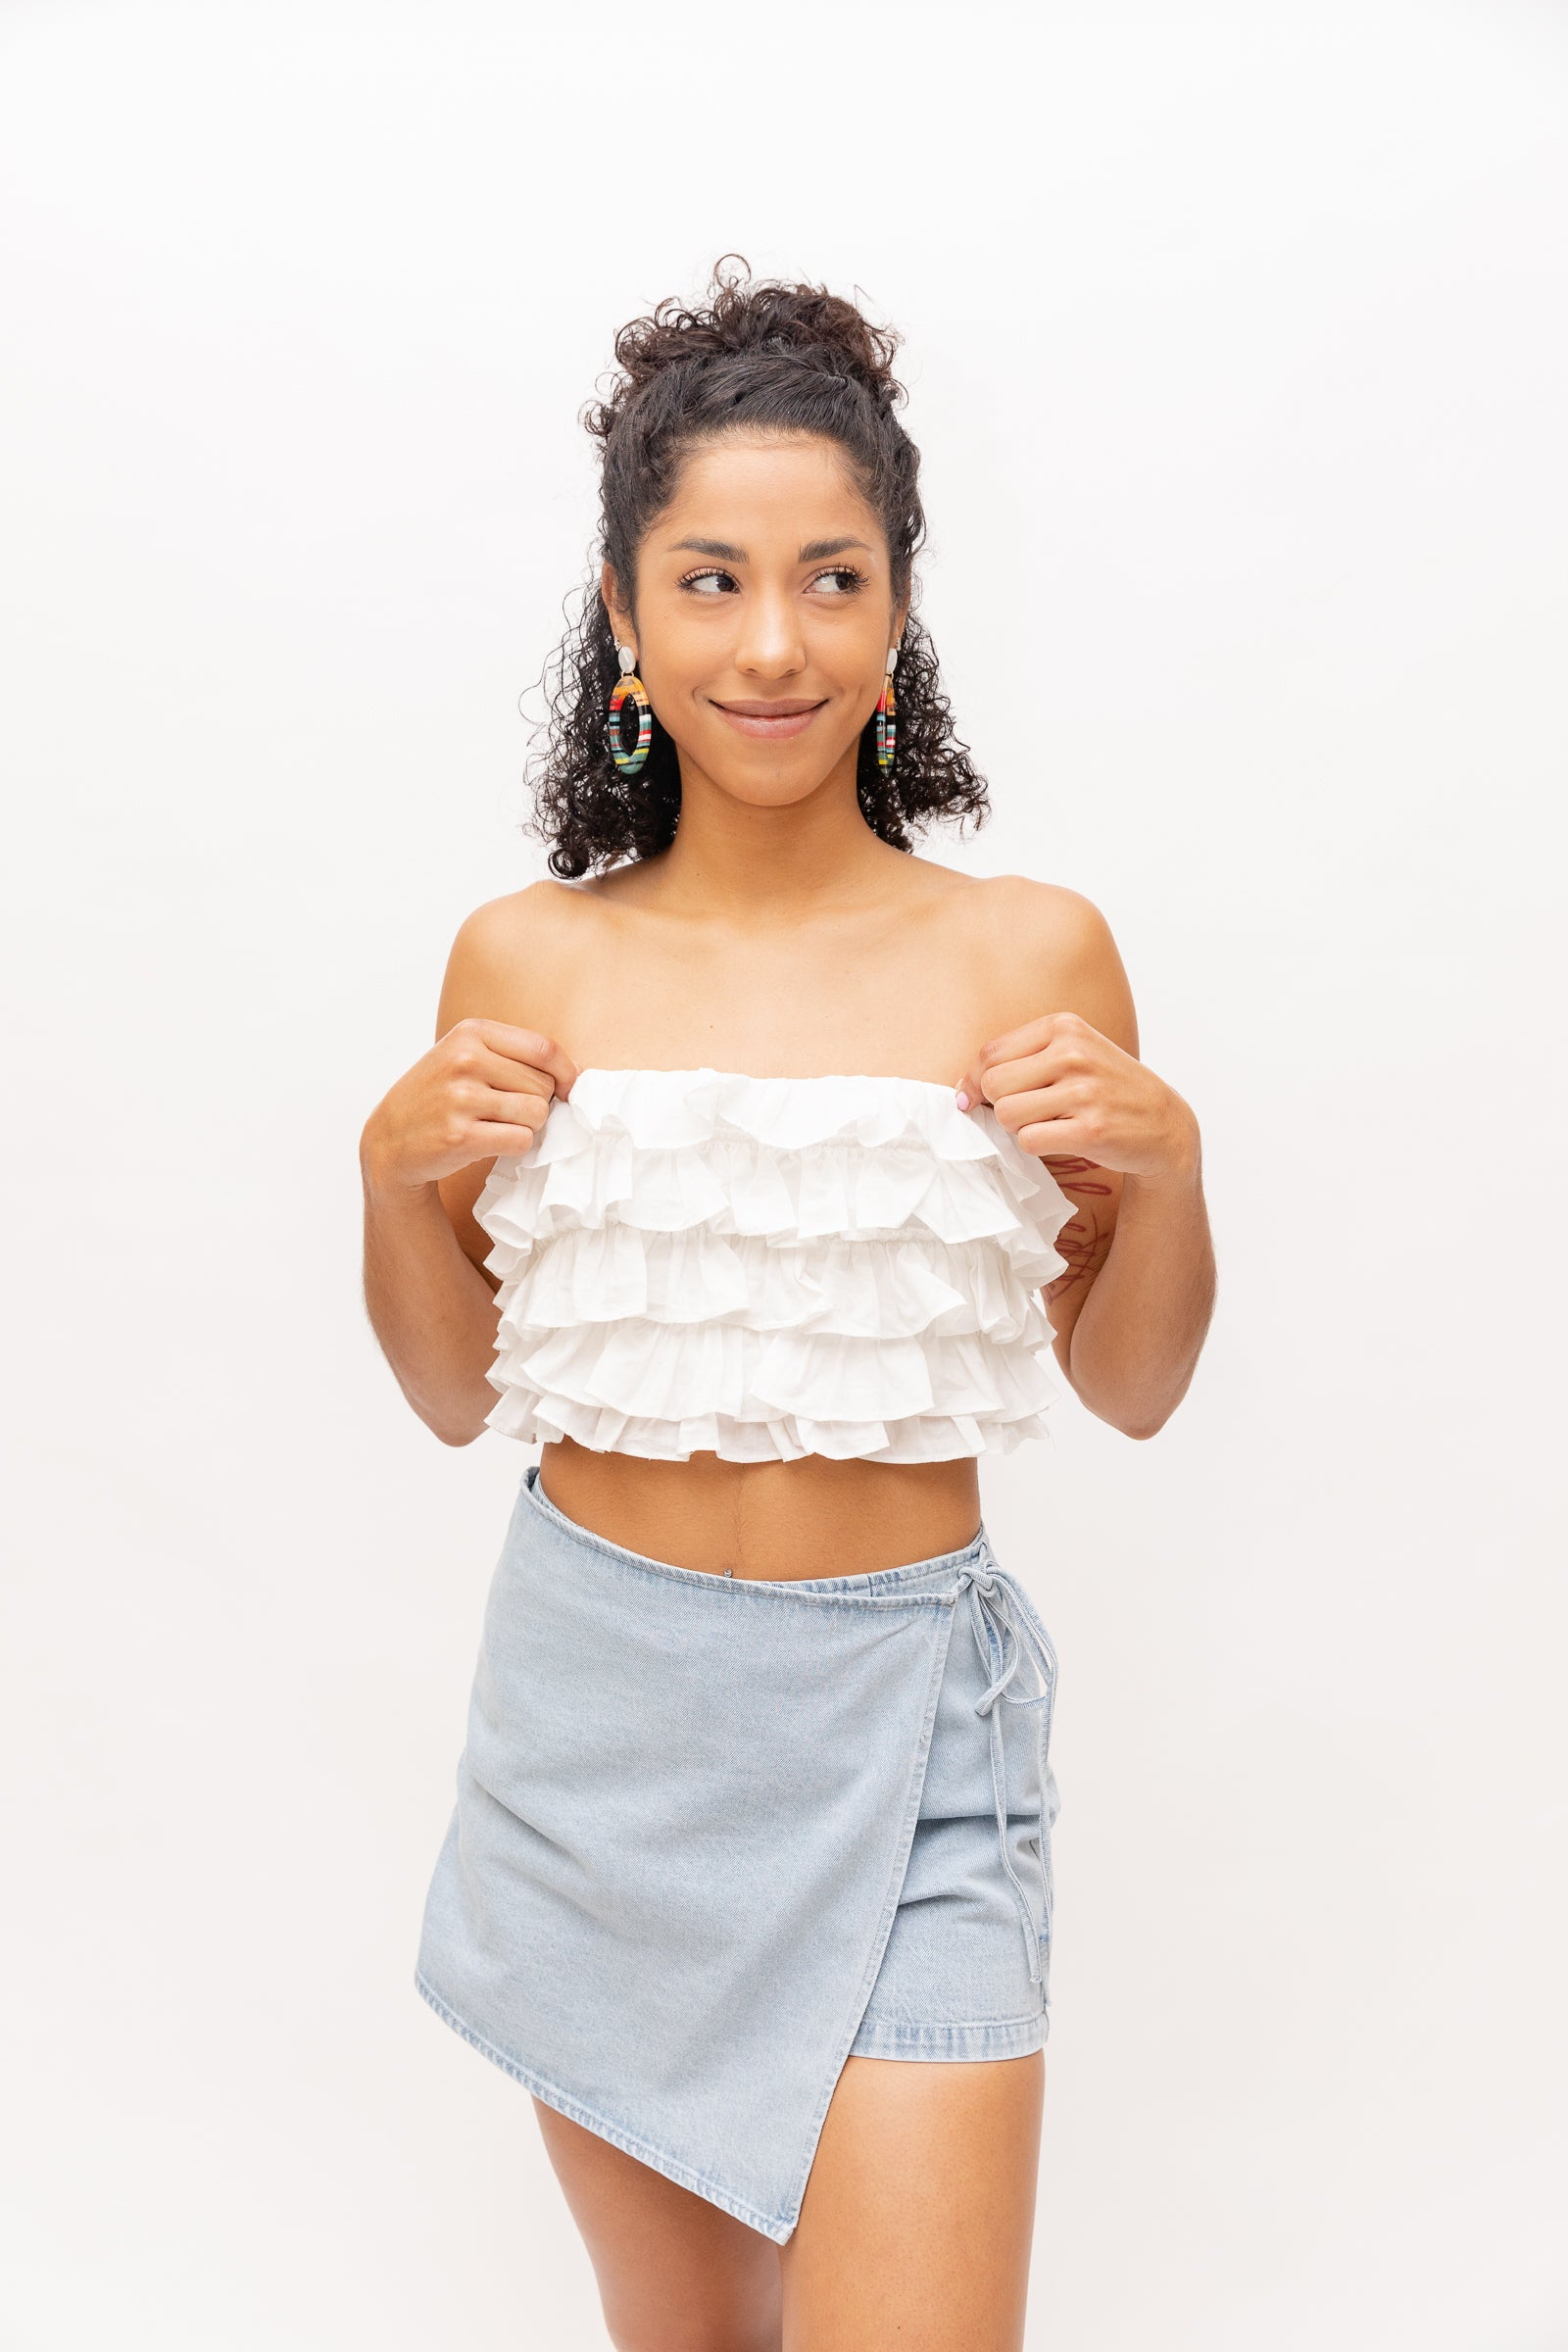 This strapless crop top has a layered ruffle trim down the bodice and on the back is crisscrossed and tied down the center.